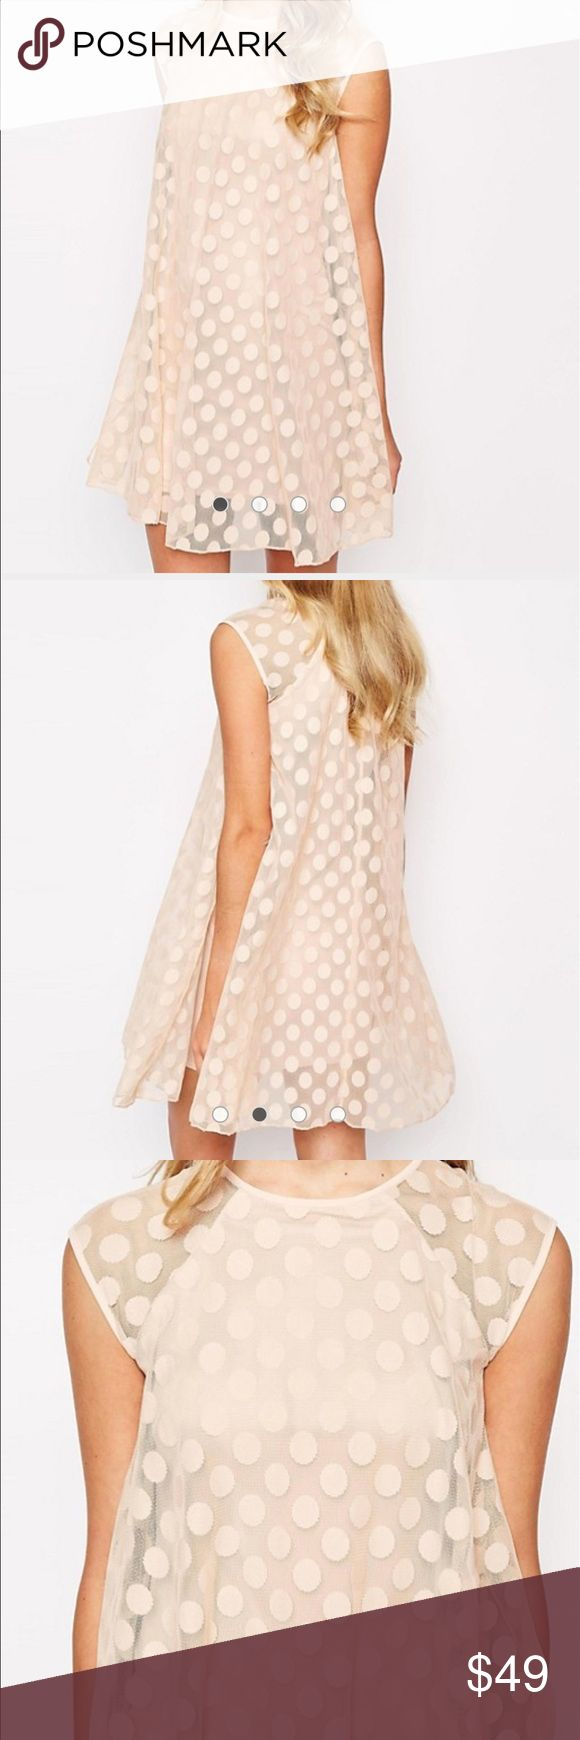 River Island Mesh Spotty Swing Dress River Island Mesh Spotty Swing Dress new with tags! Perfect for that spring or summer bridal or baby shower that'll be here before you know it! River Island Dresses Mini